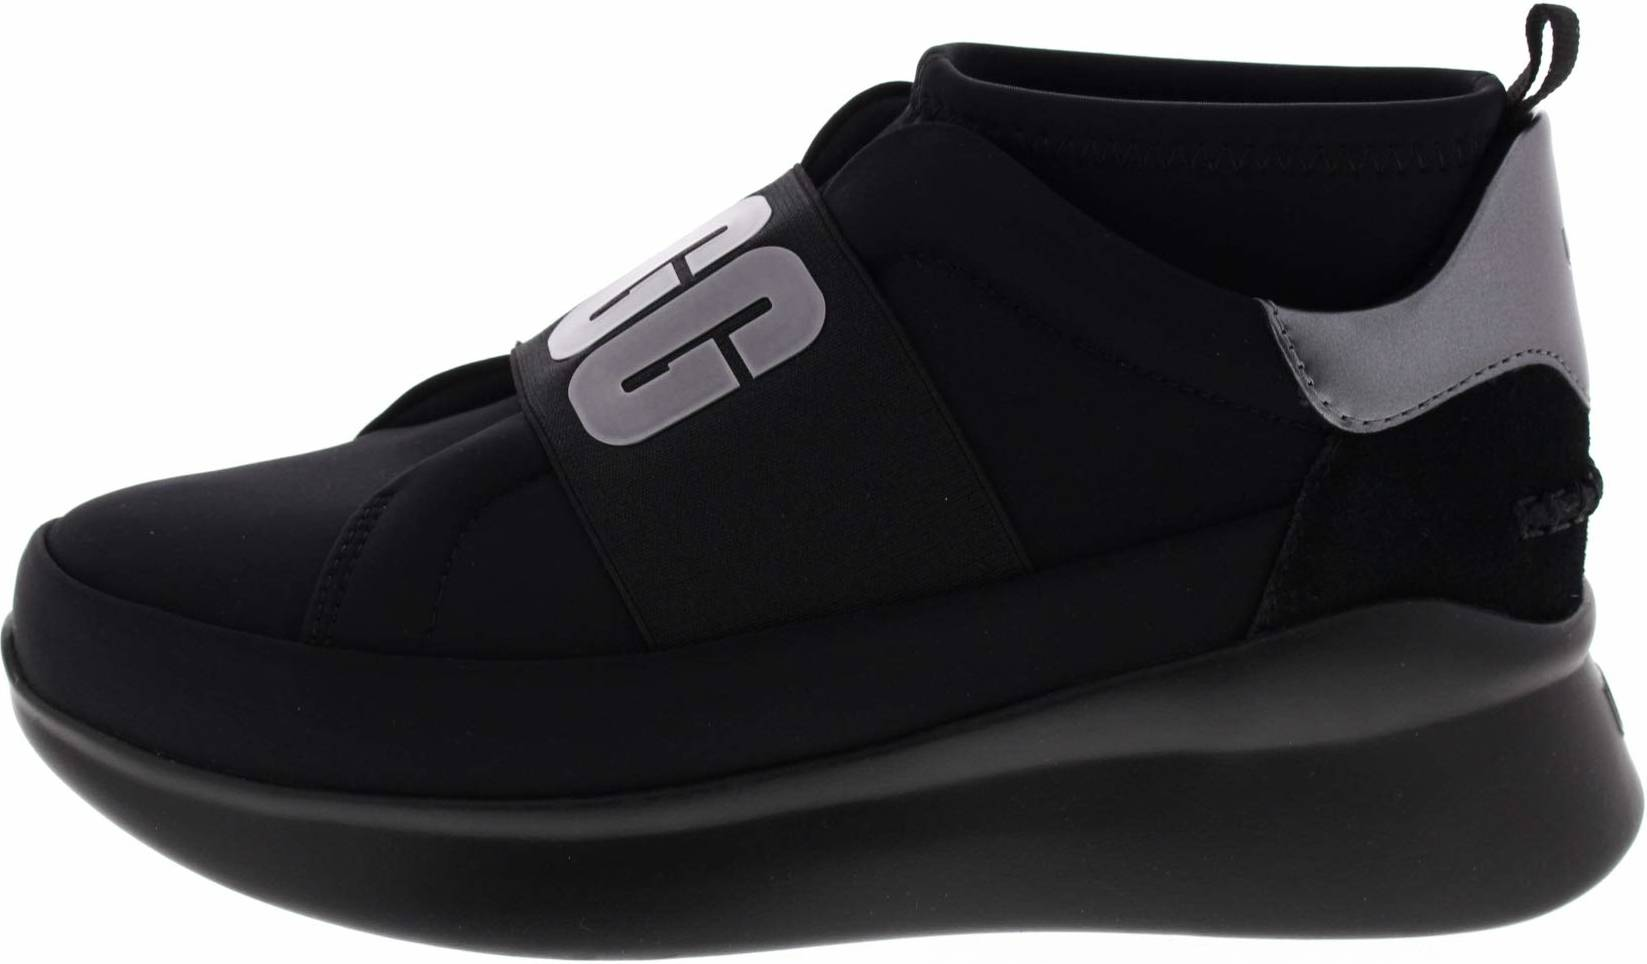 Only $64 + Review of UGG Neutra Sneaker